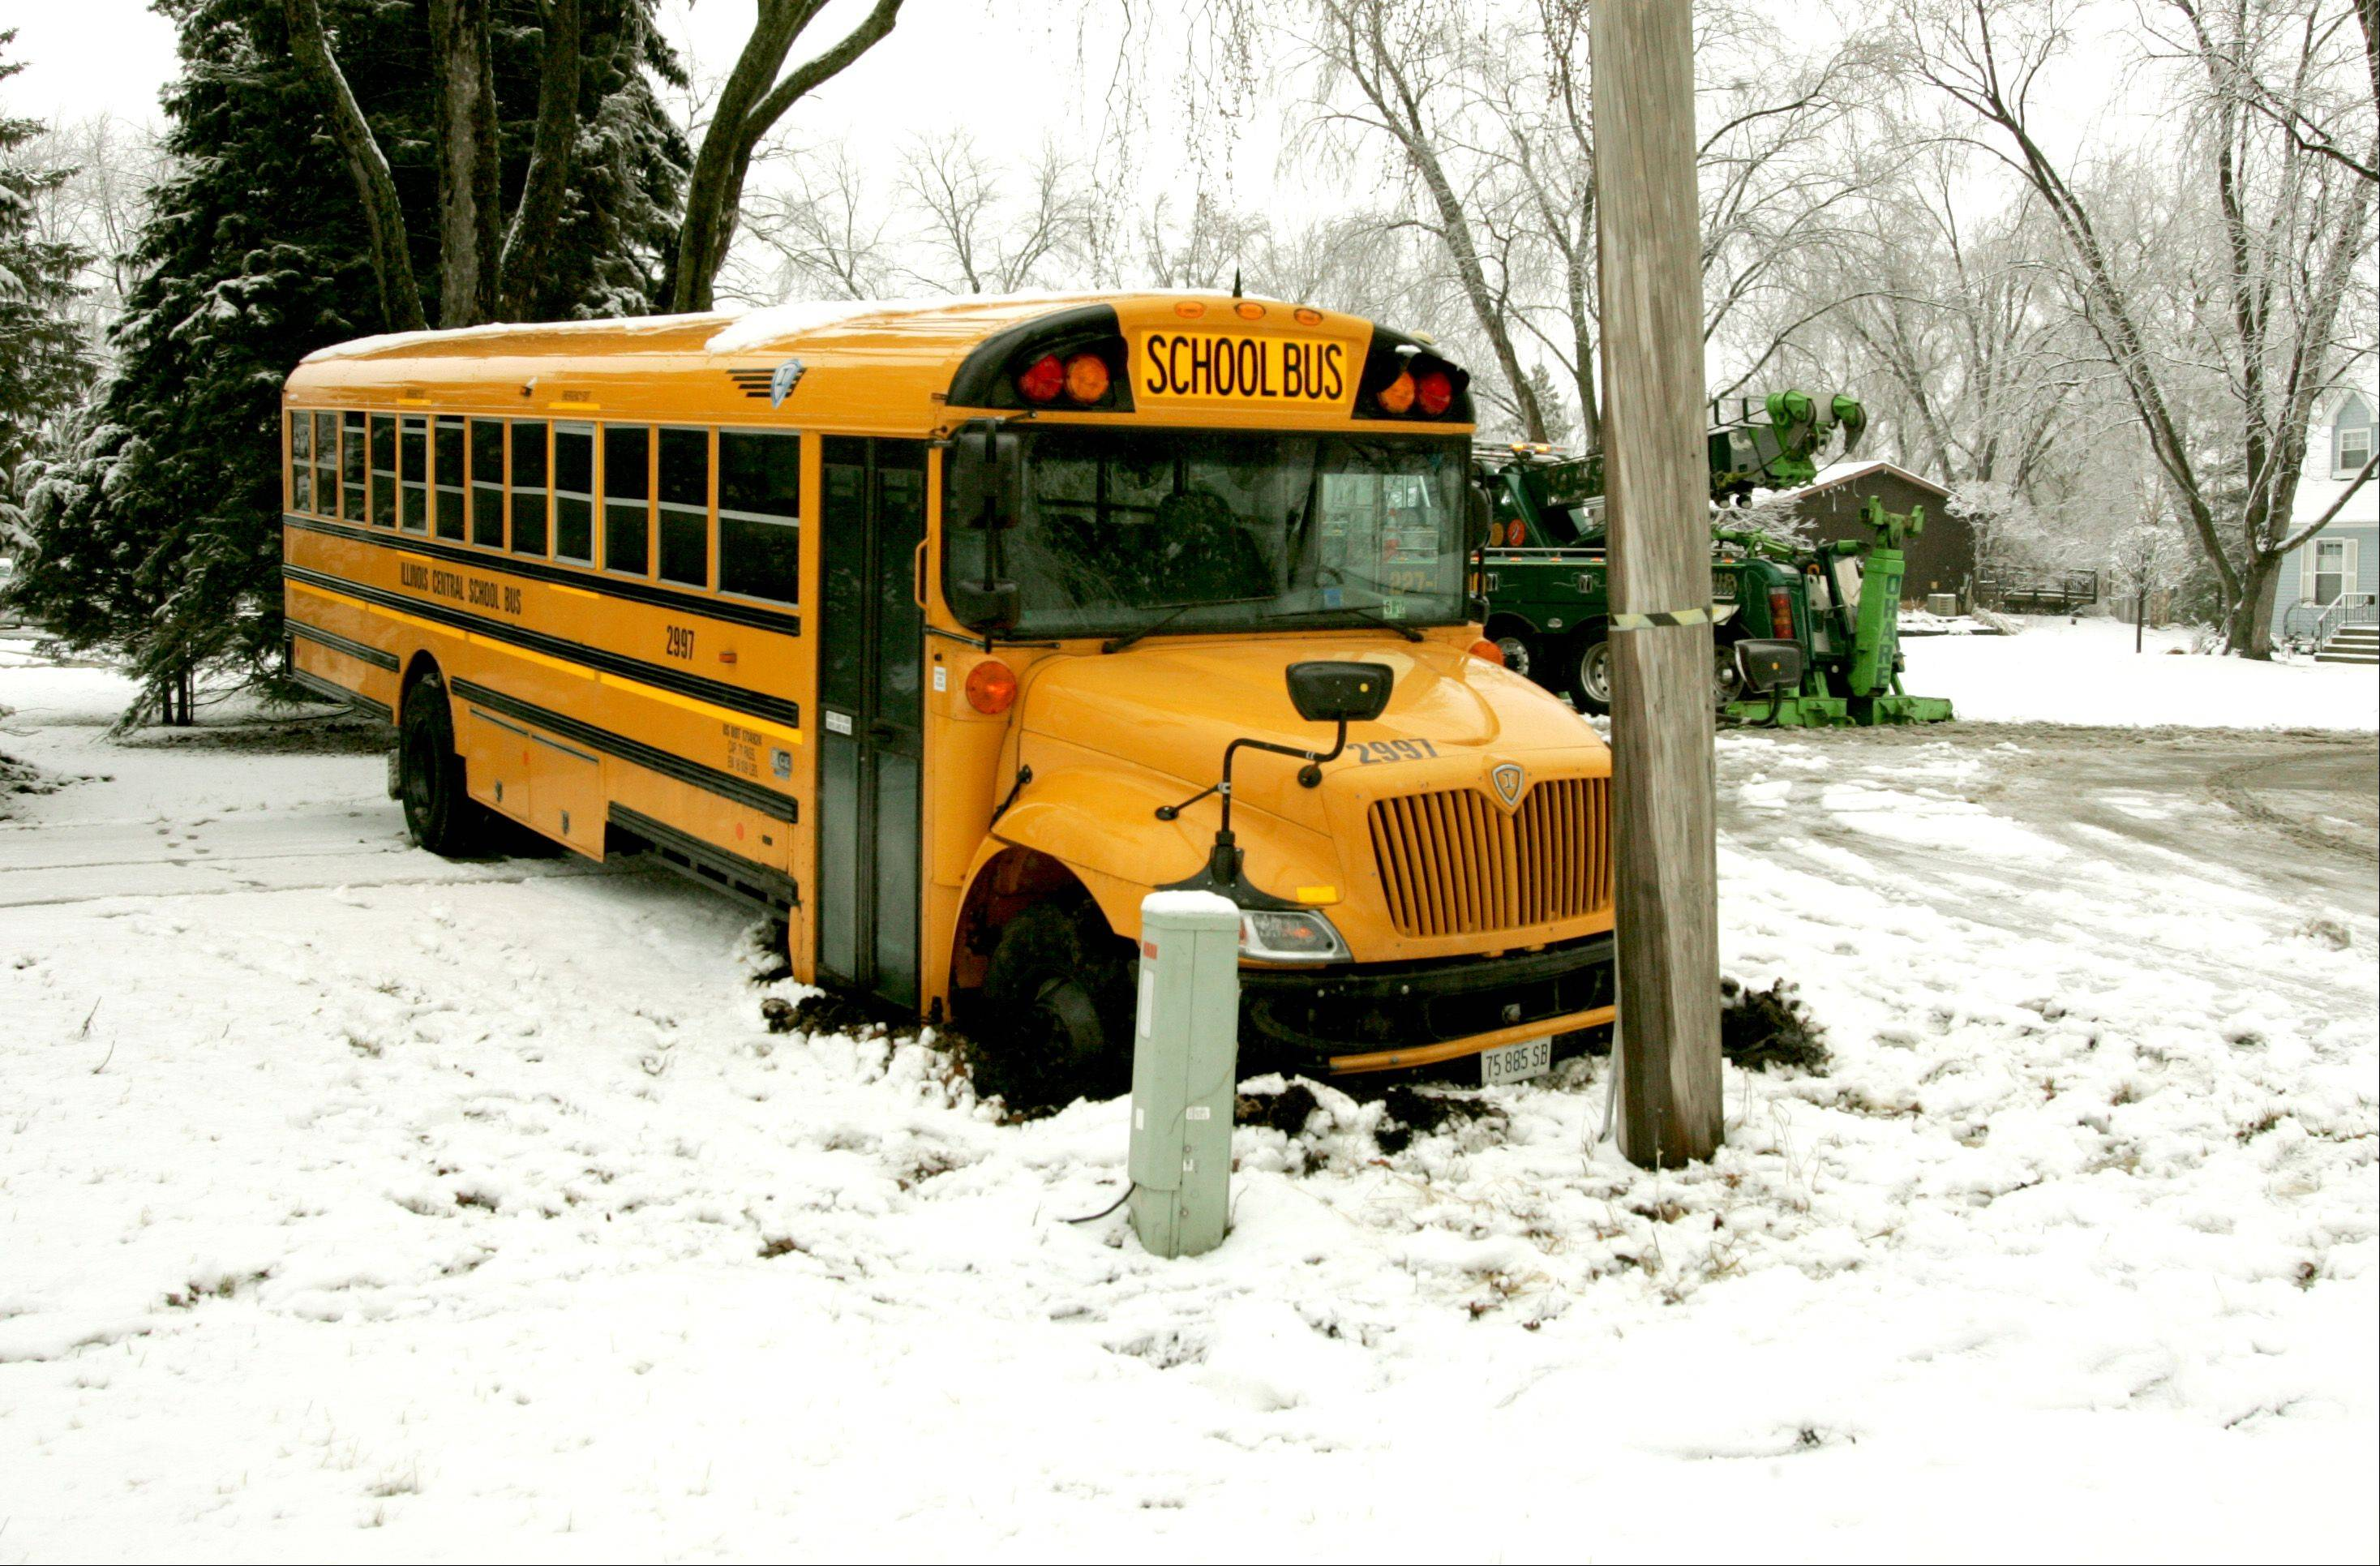 An Illinois Central school bus carrying about two dozen Lisle students skidded off an icy street Friday and wound up stuck in the snow and mud of a resident's yard. No injuries were reported.